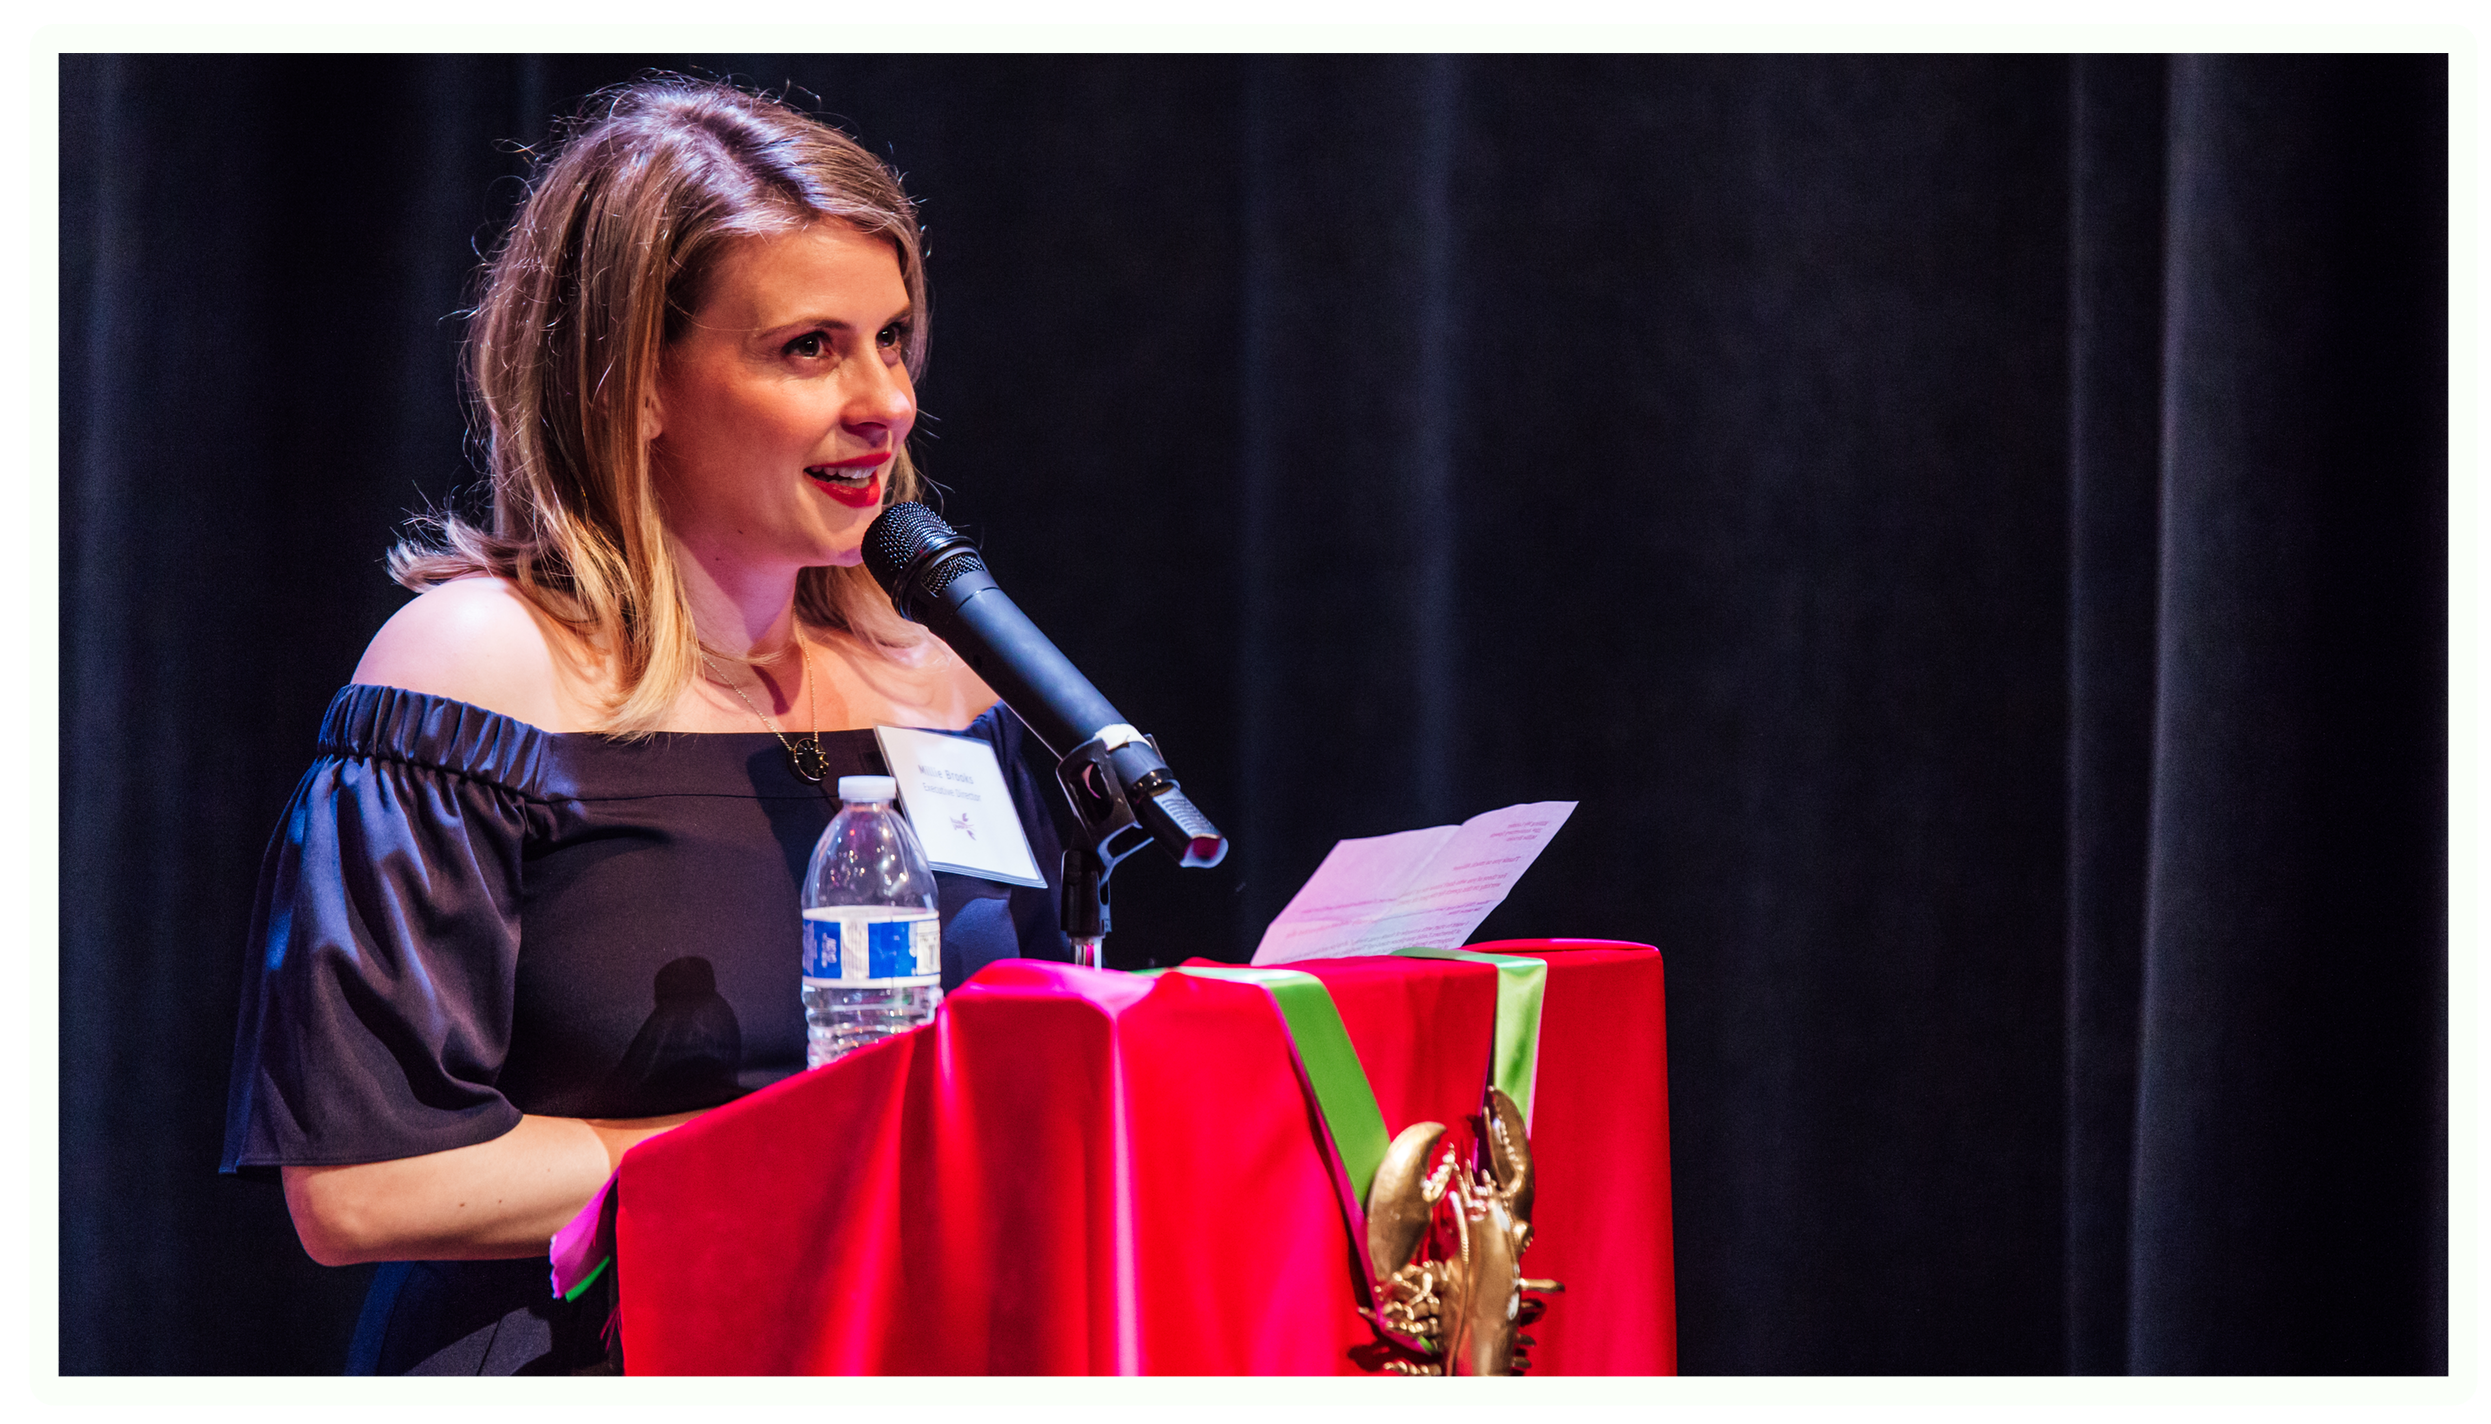 Millie Brooks giving the KML speech of a lifetime. Photo by James Jordan Pictures.